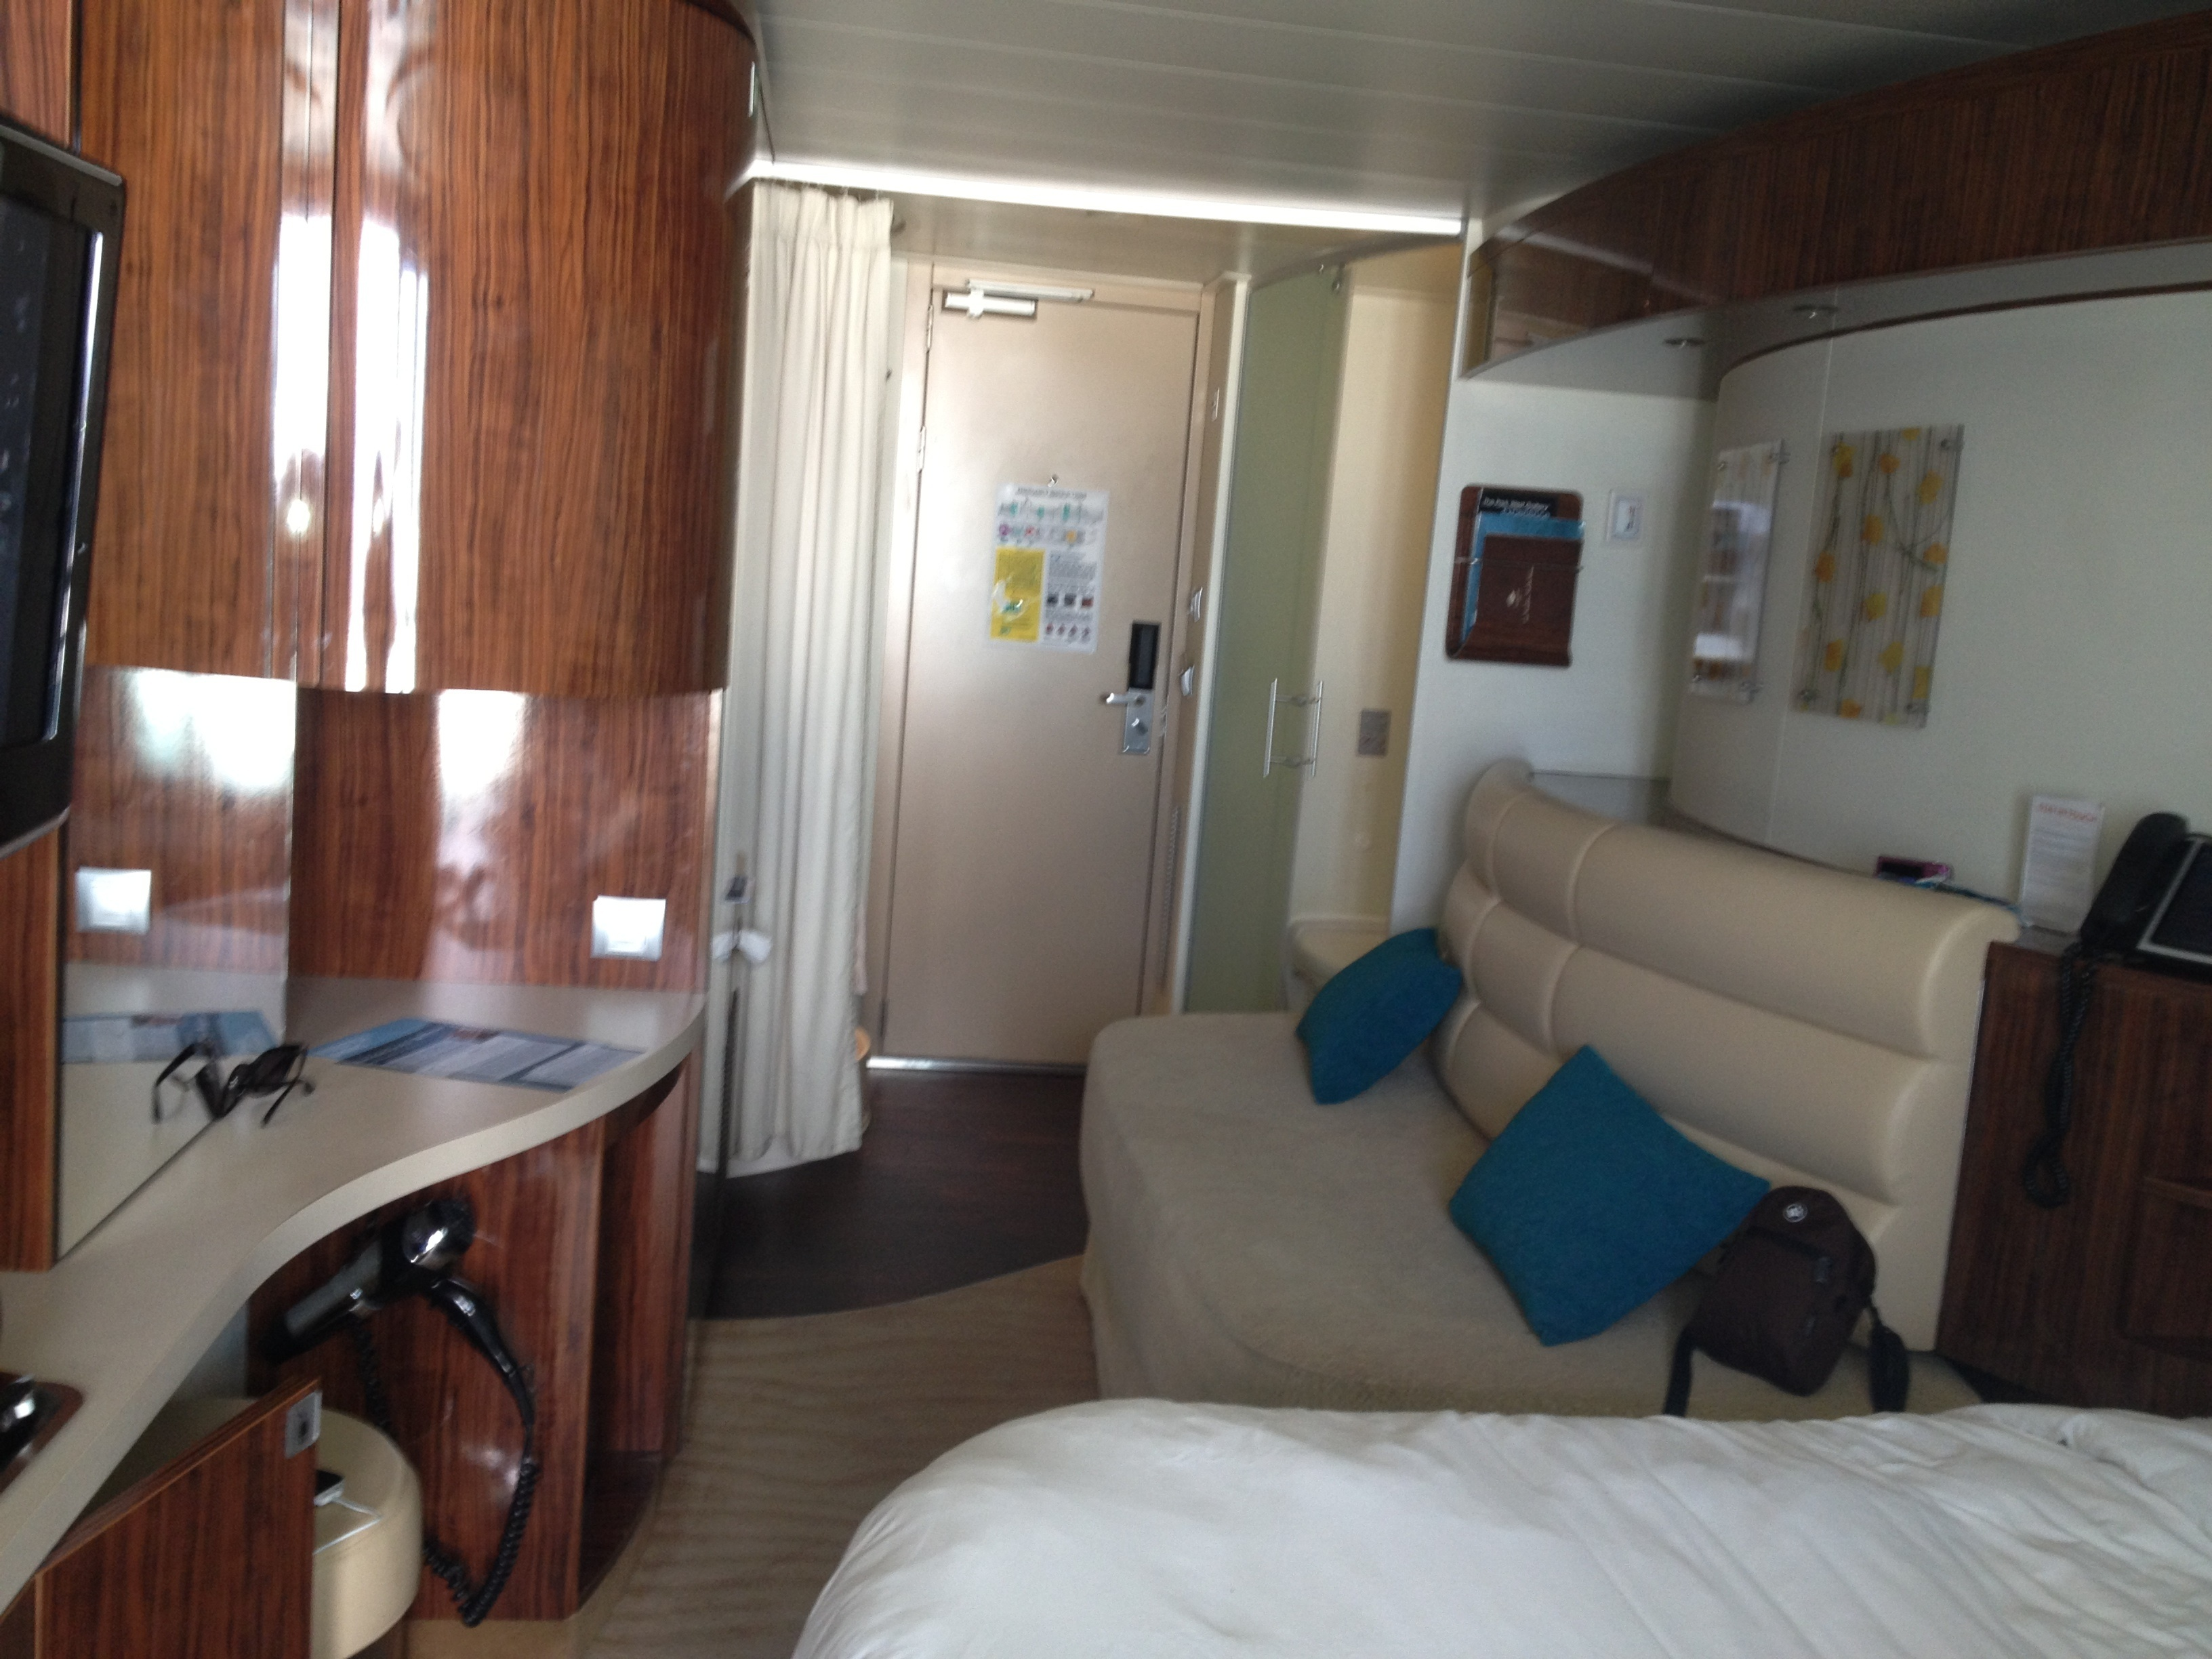 Rooms Review: Norwegian Epic Cruise Review